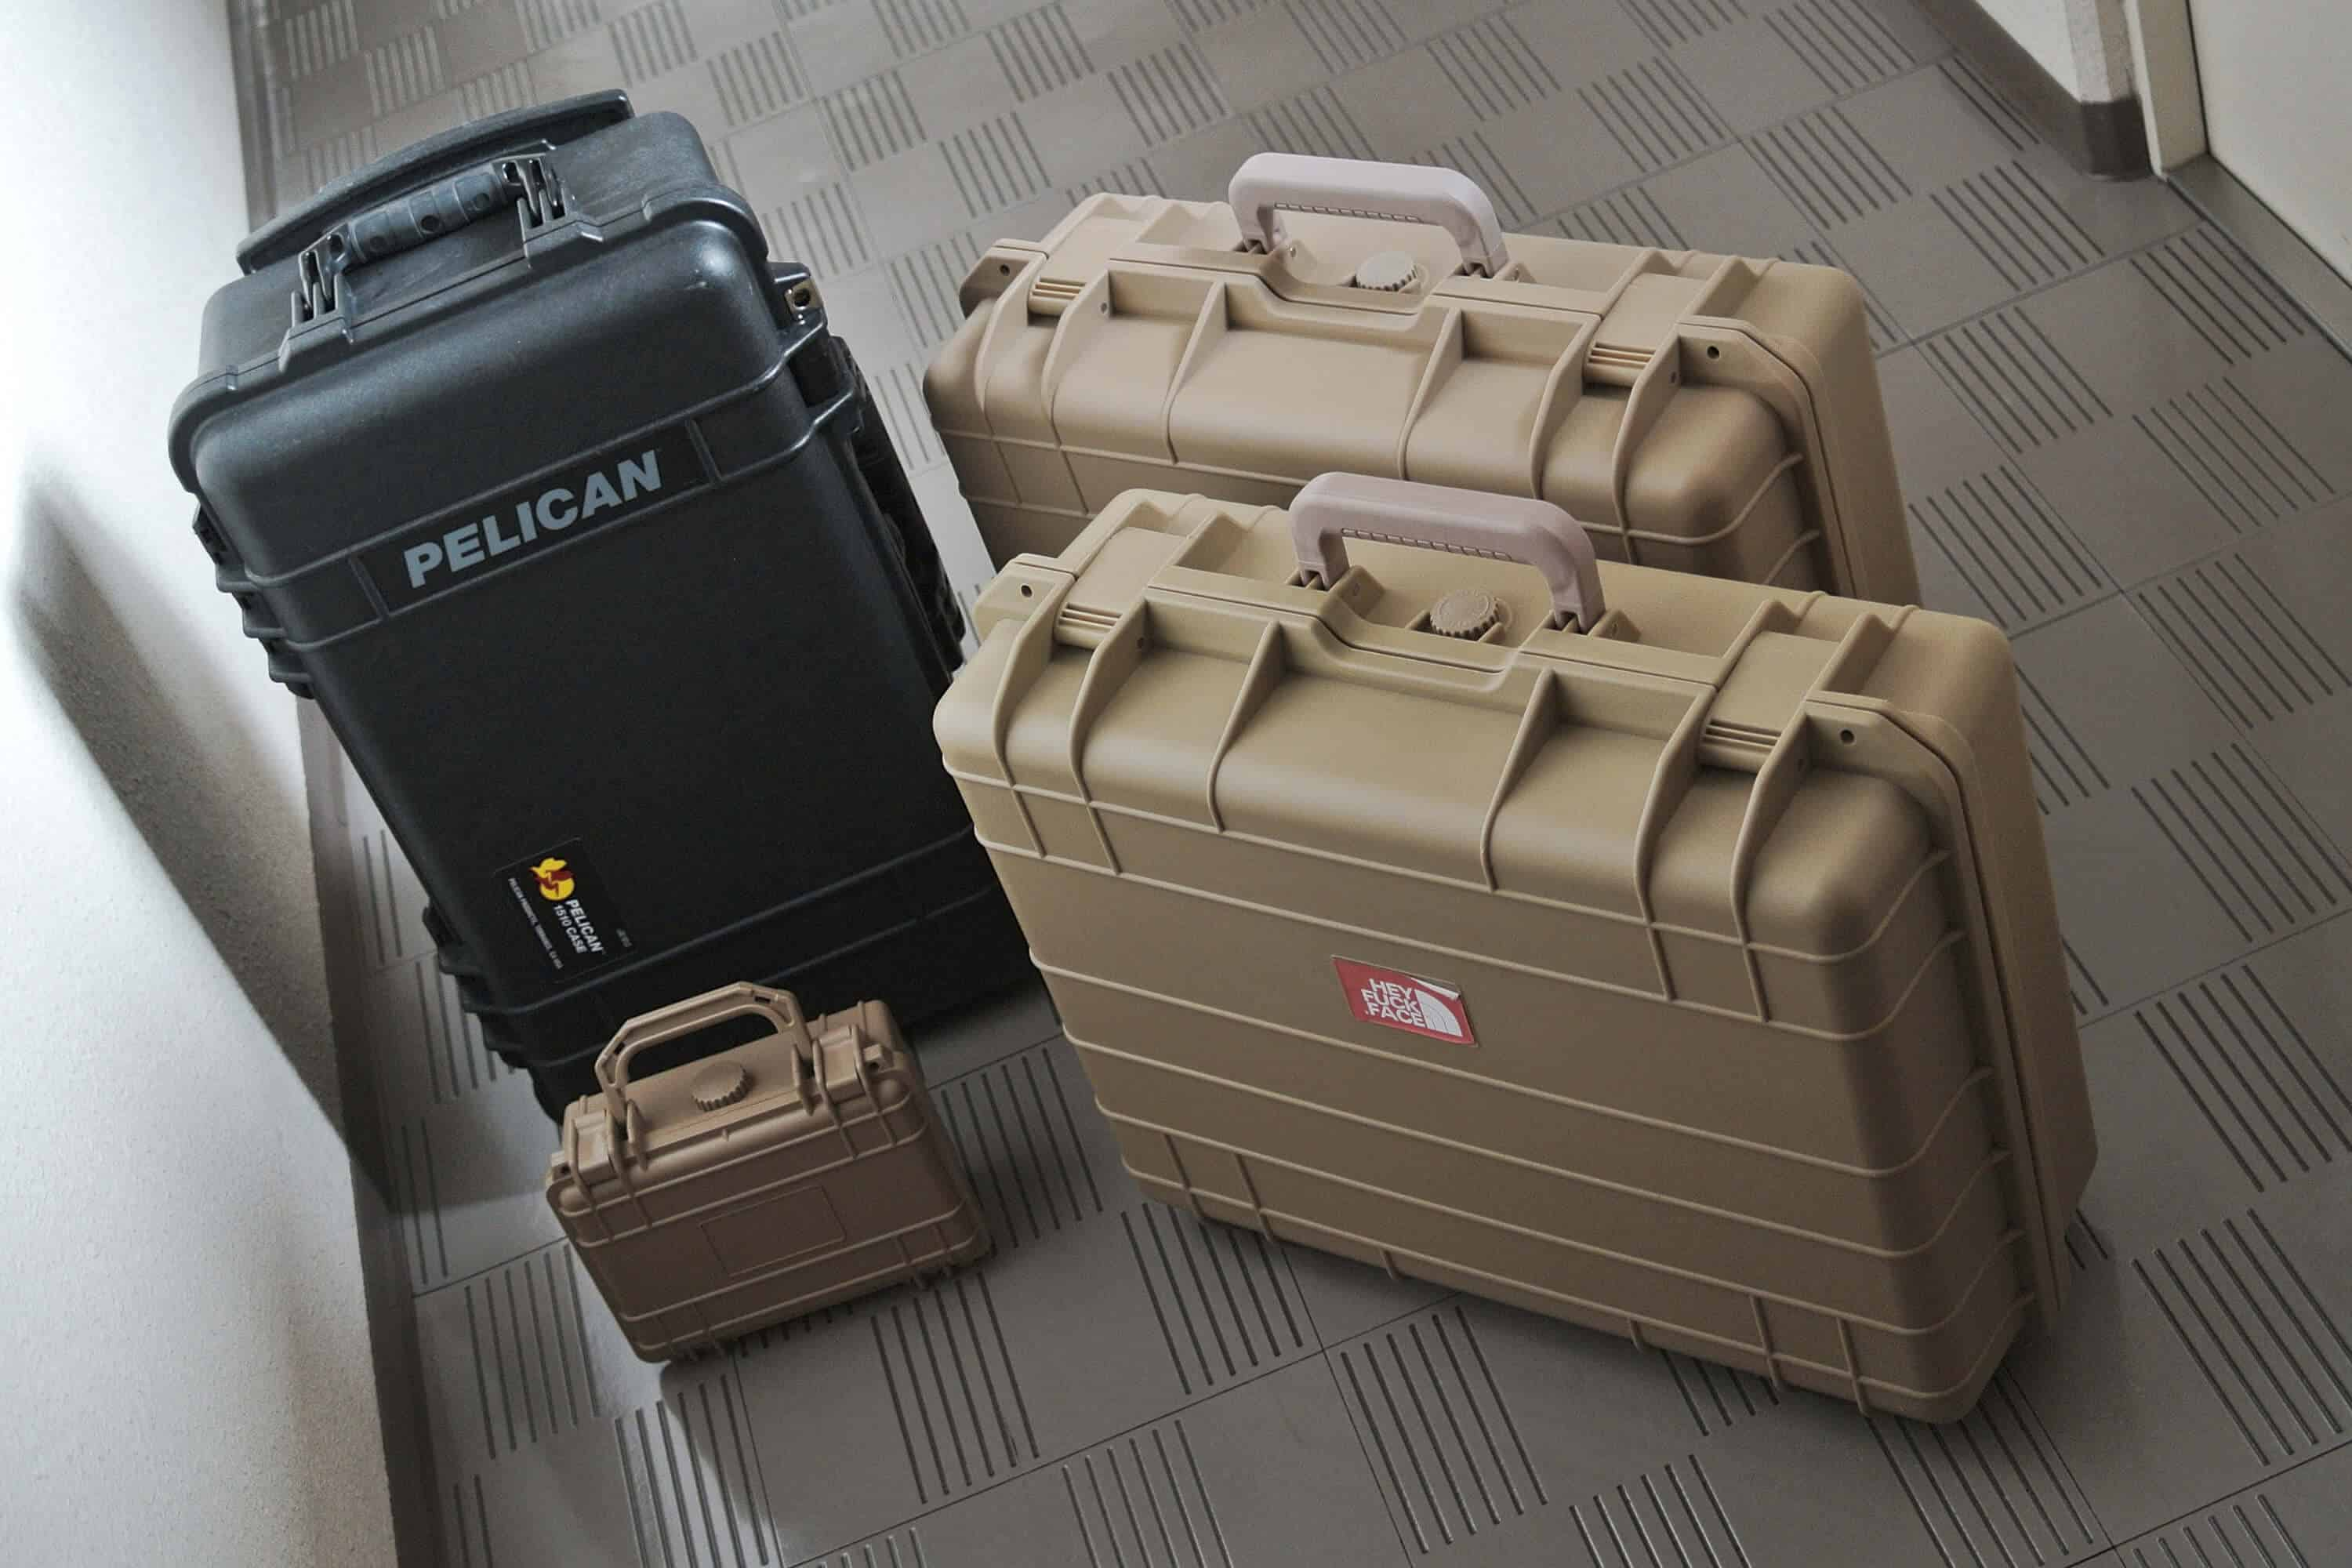 Pelican cases of different sizes